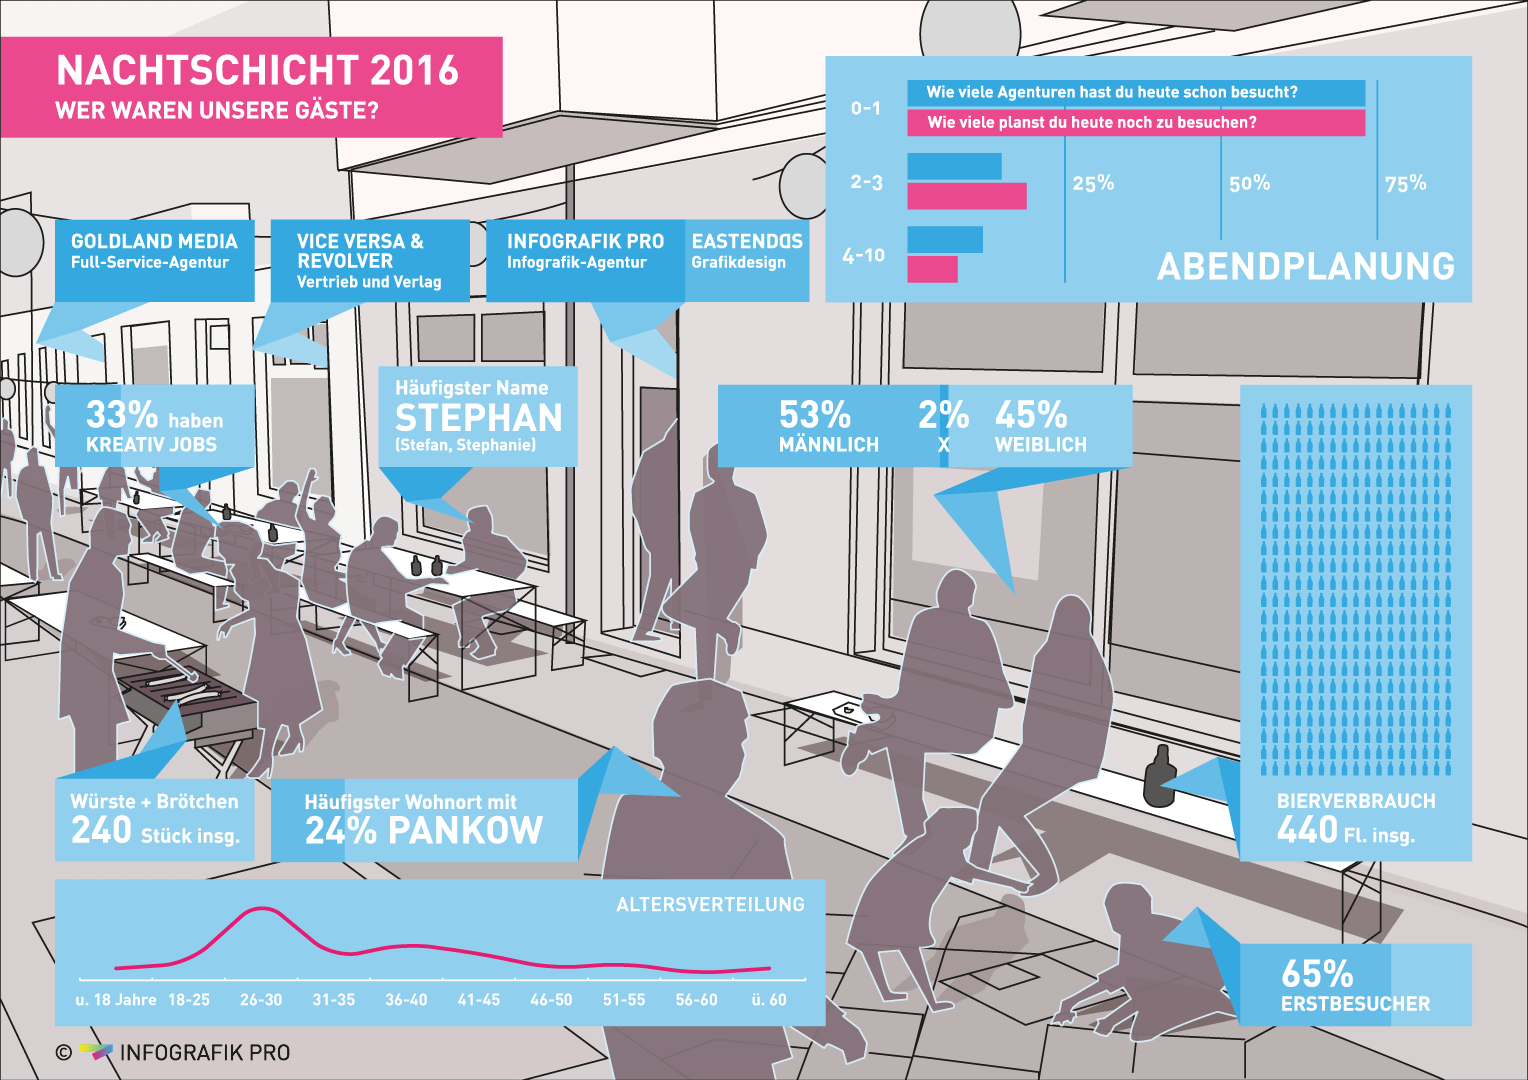 Infographic for the Berlin Design Night